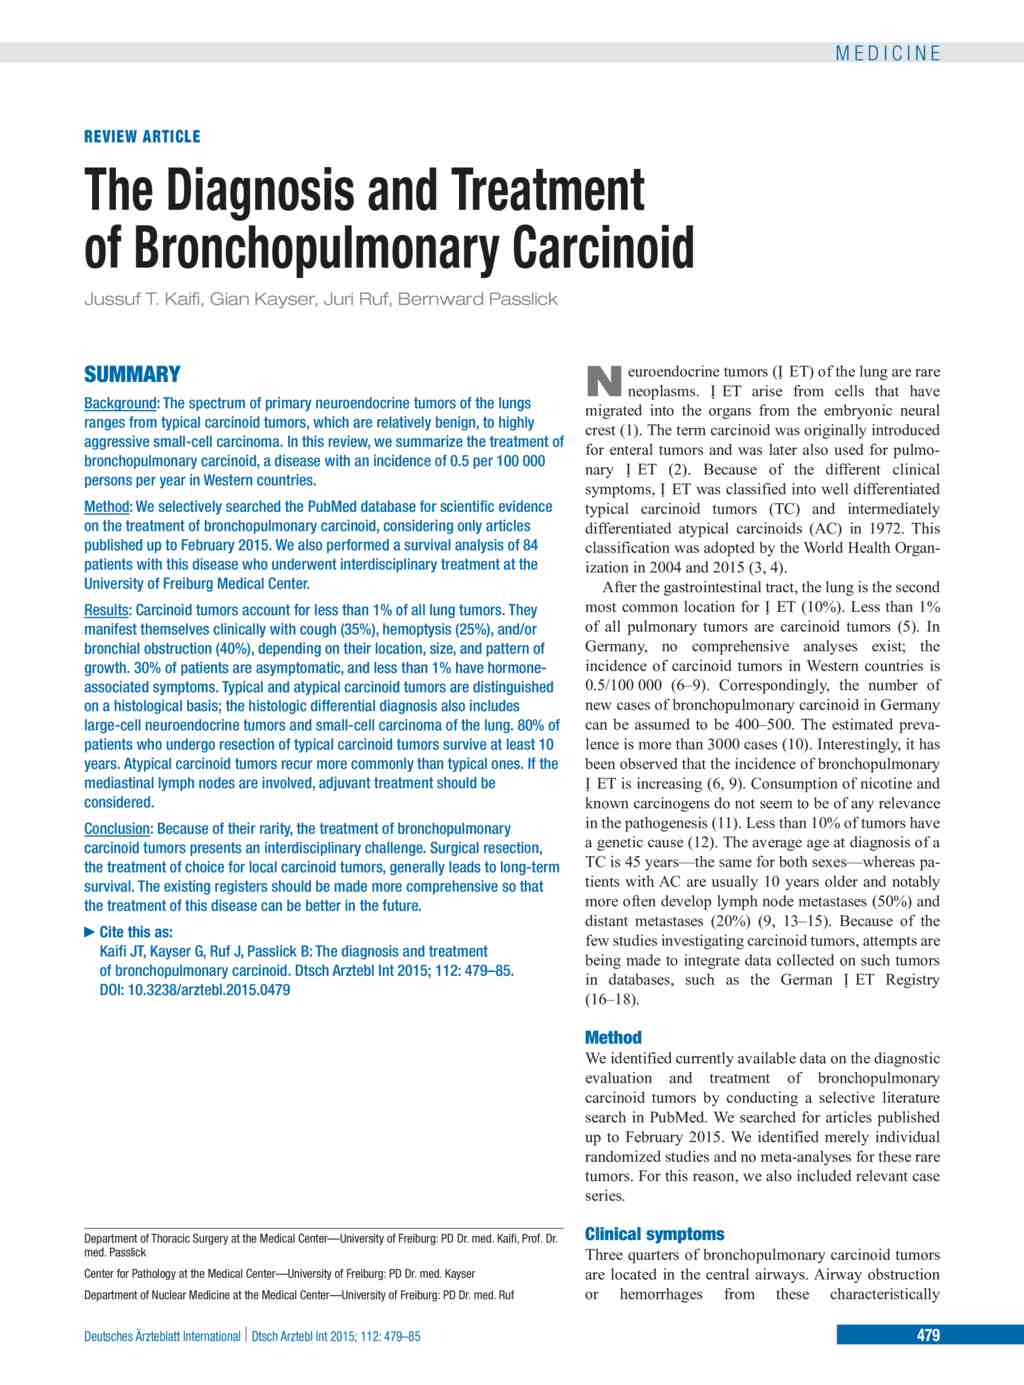 Diagnosis of Carcinoid Tumours of the Lung recommendations